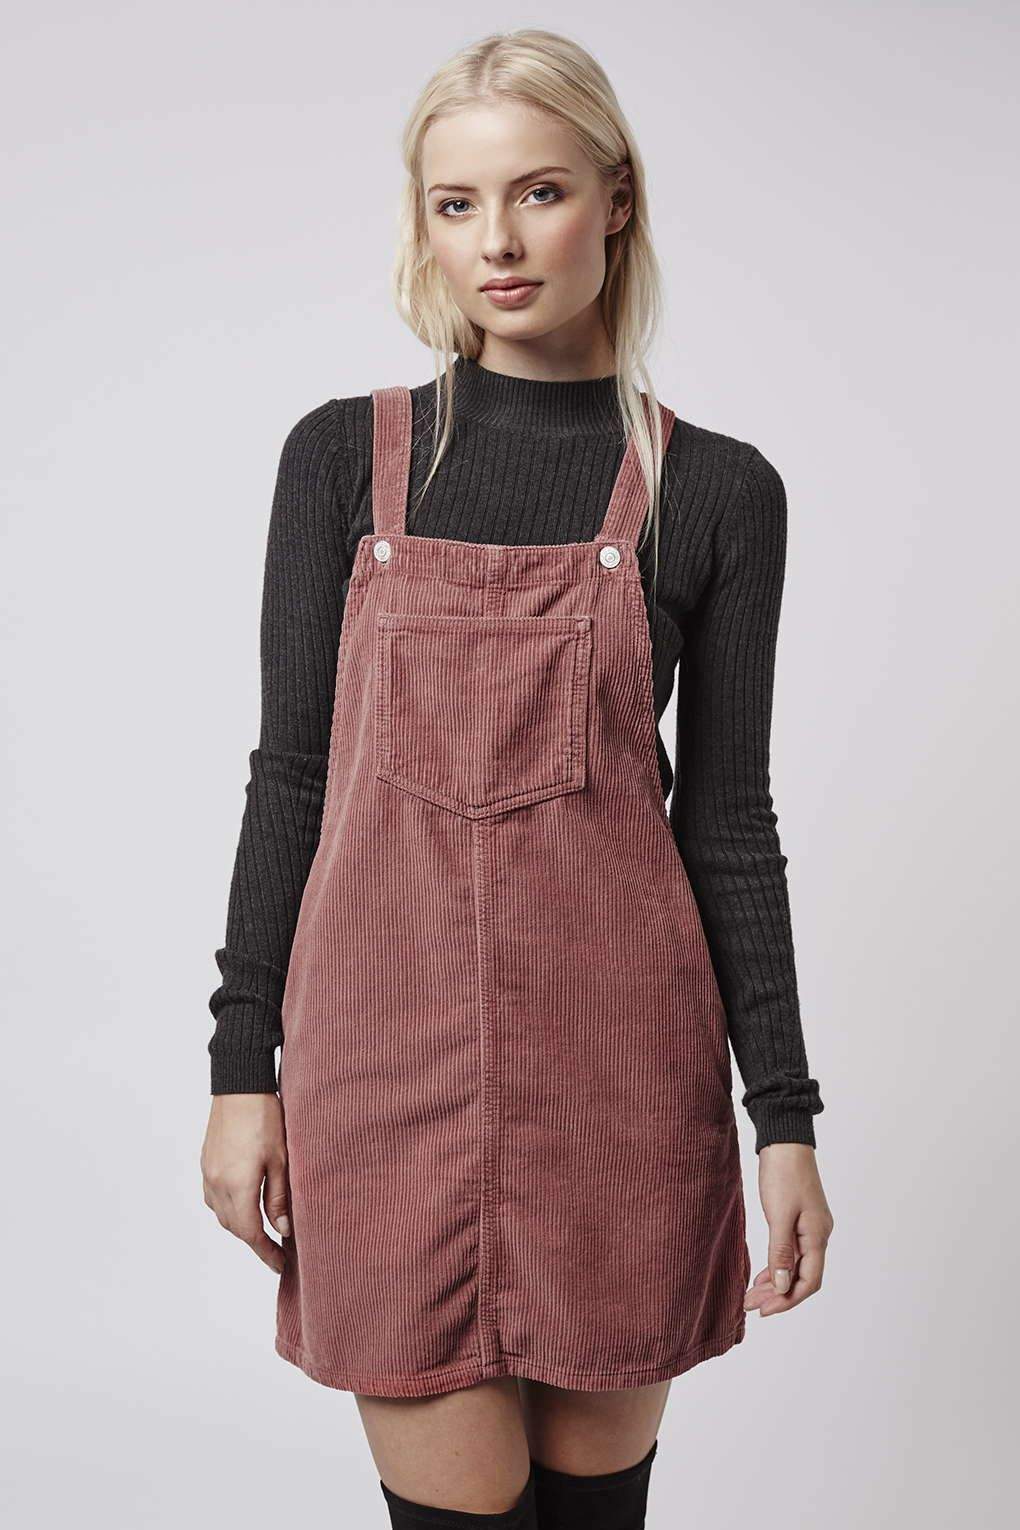 moto floral pinafore dress. moto dusty pink cord pinafore dress - denim clothing moto floral t